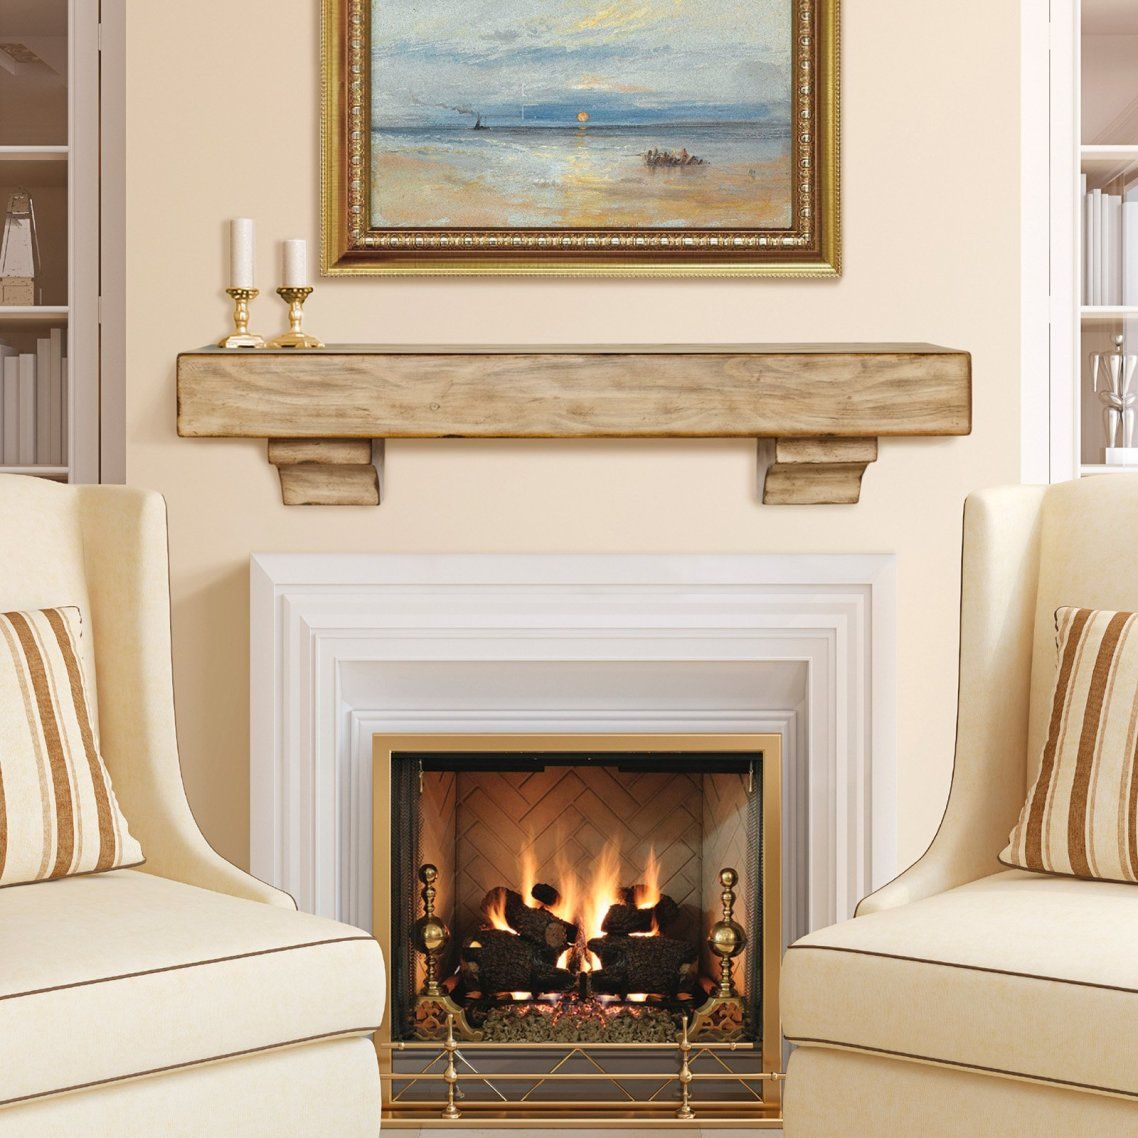 Most Realistic Electric Fireplace Captivating Interior Contemporary